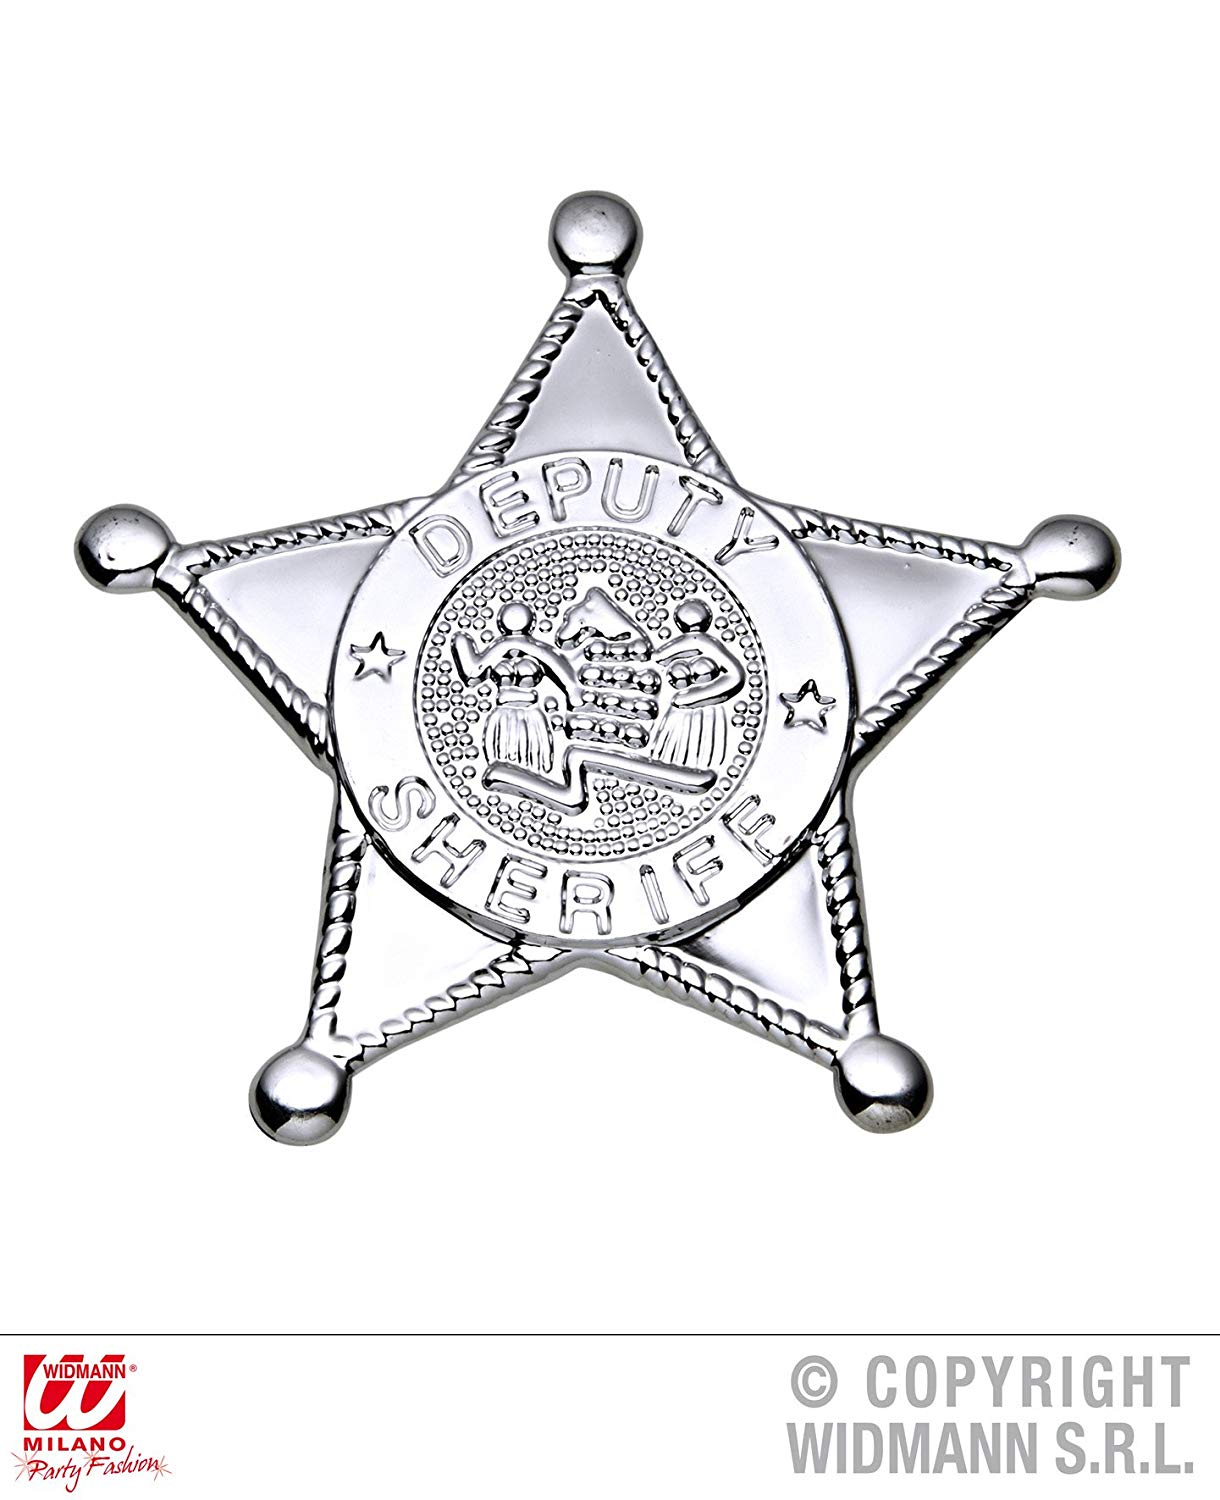 Silver Sheriff Star Badge Accessory for Wild West Cowboys & Indians Fancy Dress Up Costumes & Outfits